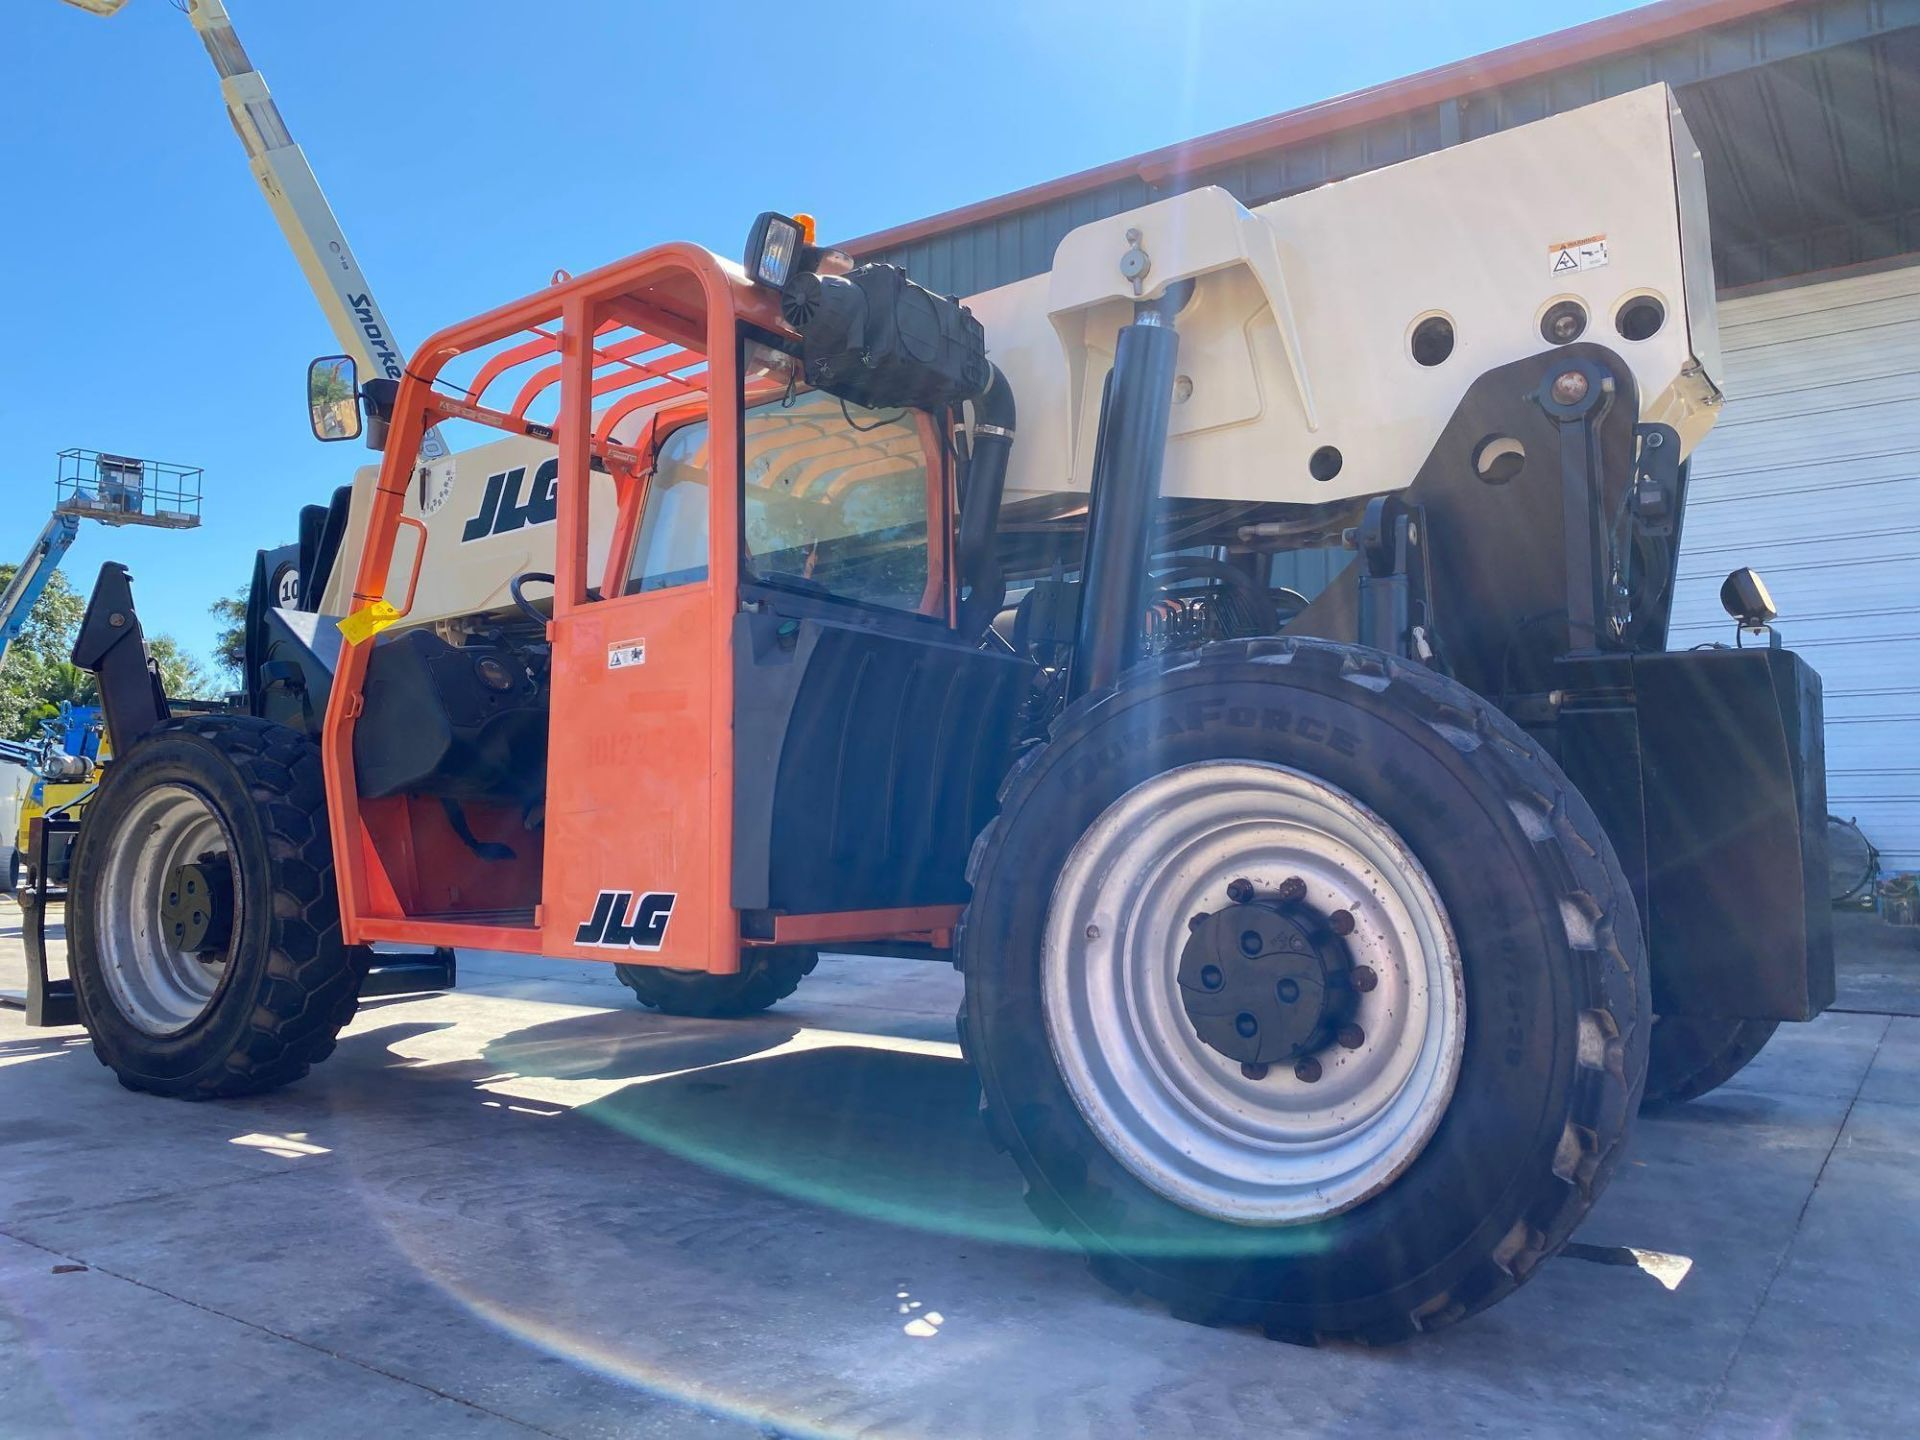 Lot 16 - 2013 JLG TELESCOPIC FORKLIFT MODEL G10-55A, 10,000 LB CAPACITY, OUTRIGGERS, 5,717.7 HOURS SHOWING, C